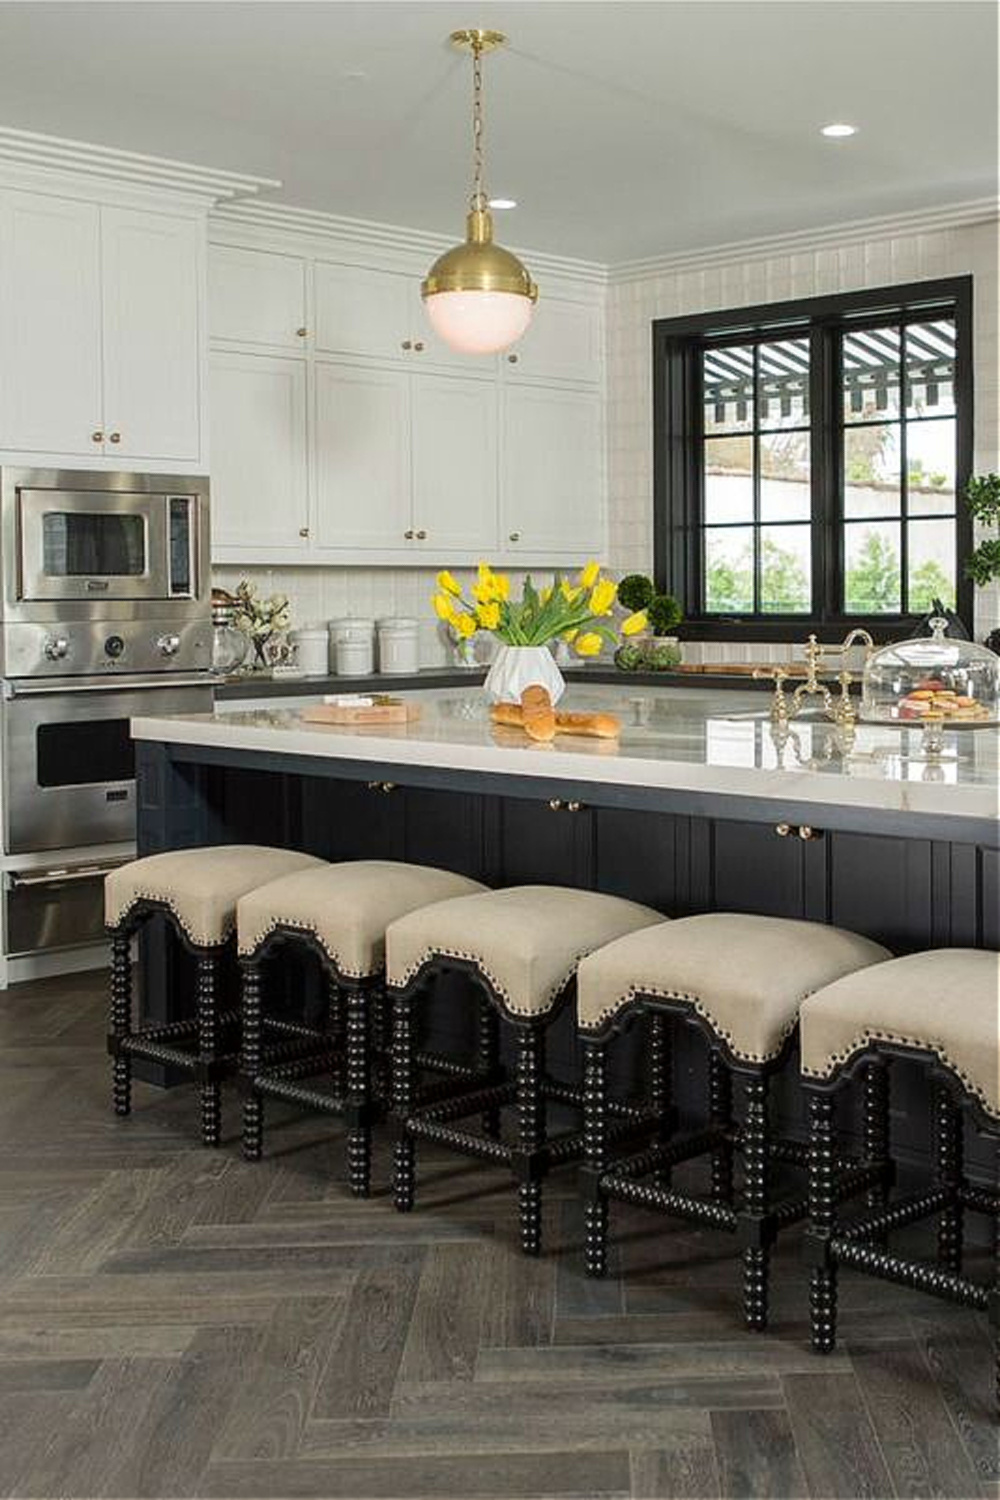 Drew's honeymoon house kitchen (a classic black and white 1920s beauty!) with Farrow & Ball Railings on island and trim. #drewscott #propertybrothers #honeymoonhouse #kitchen #railings